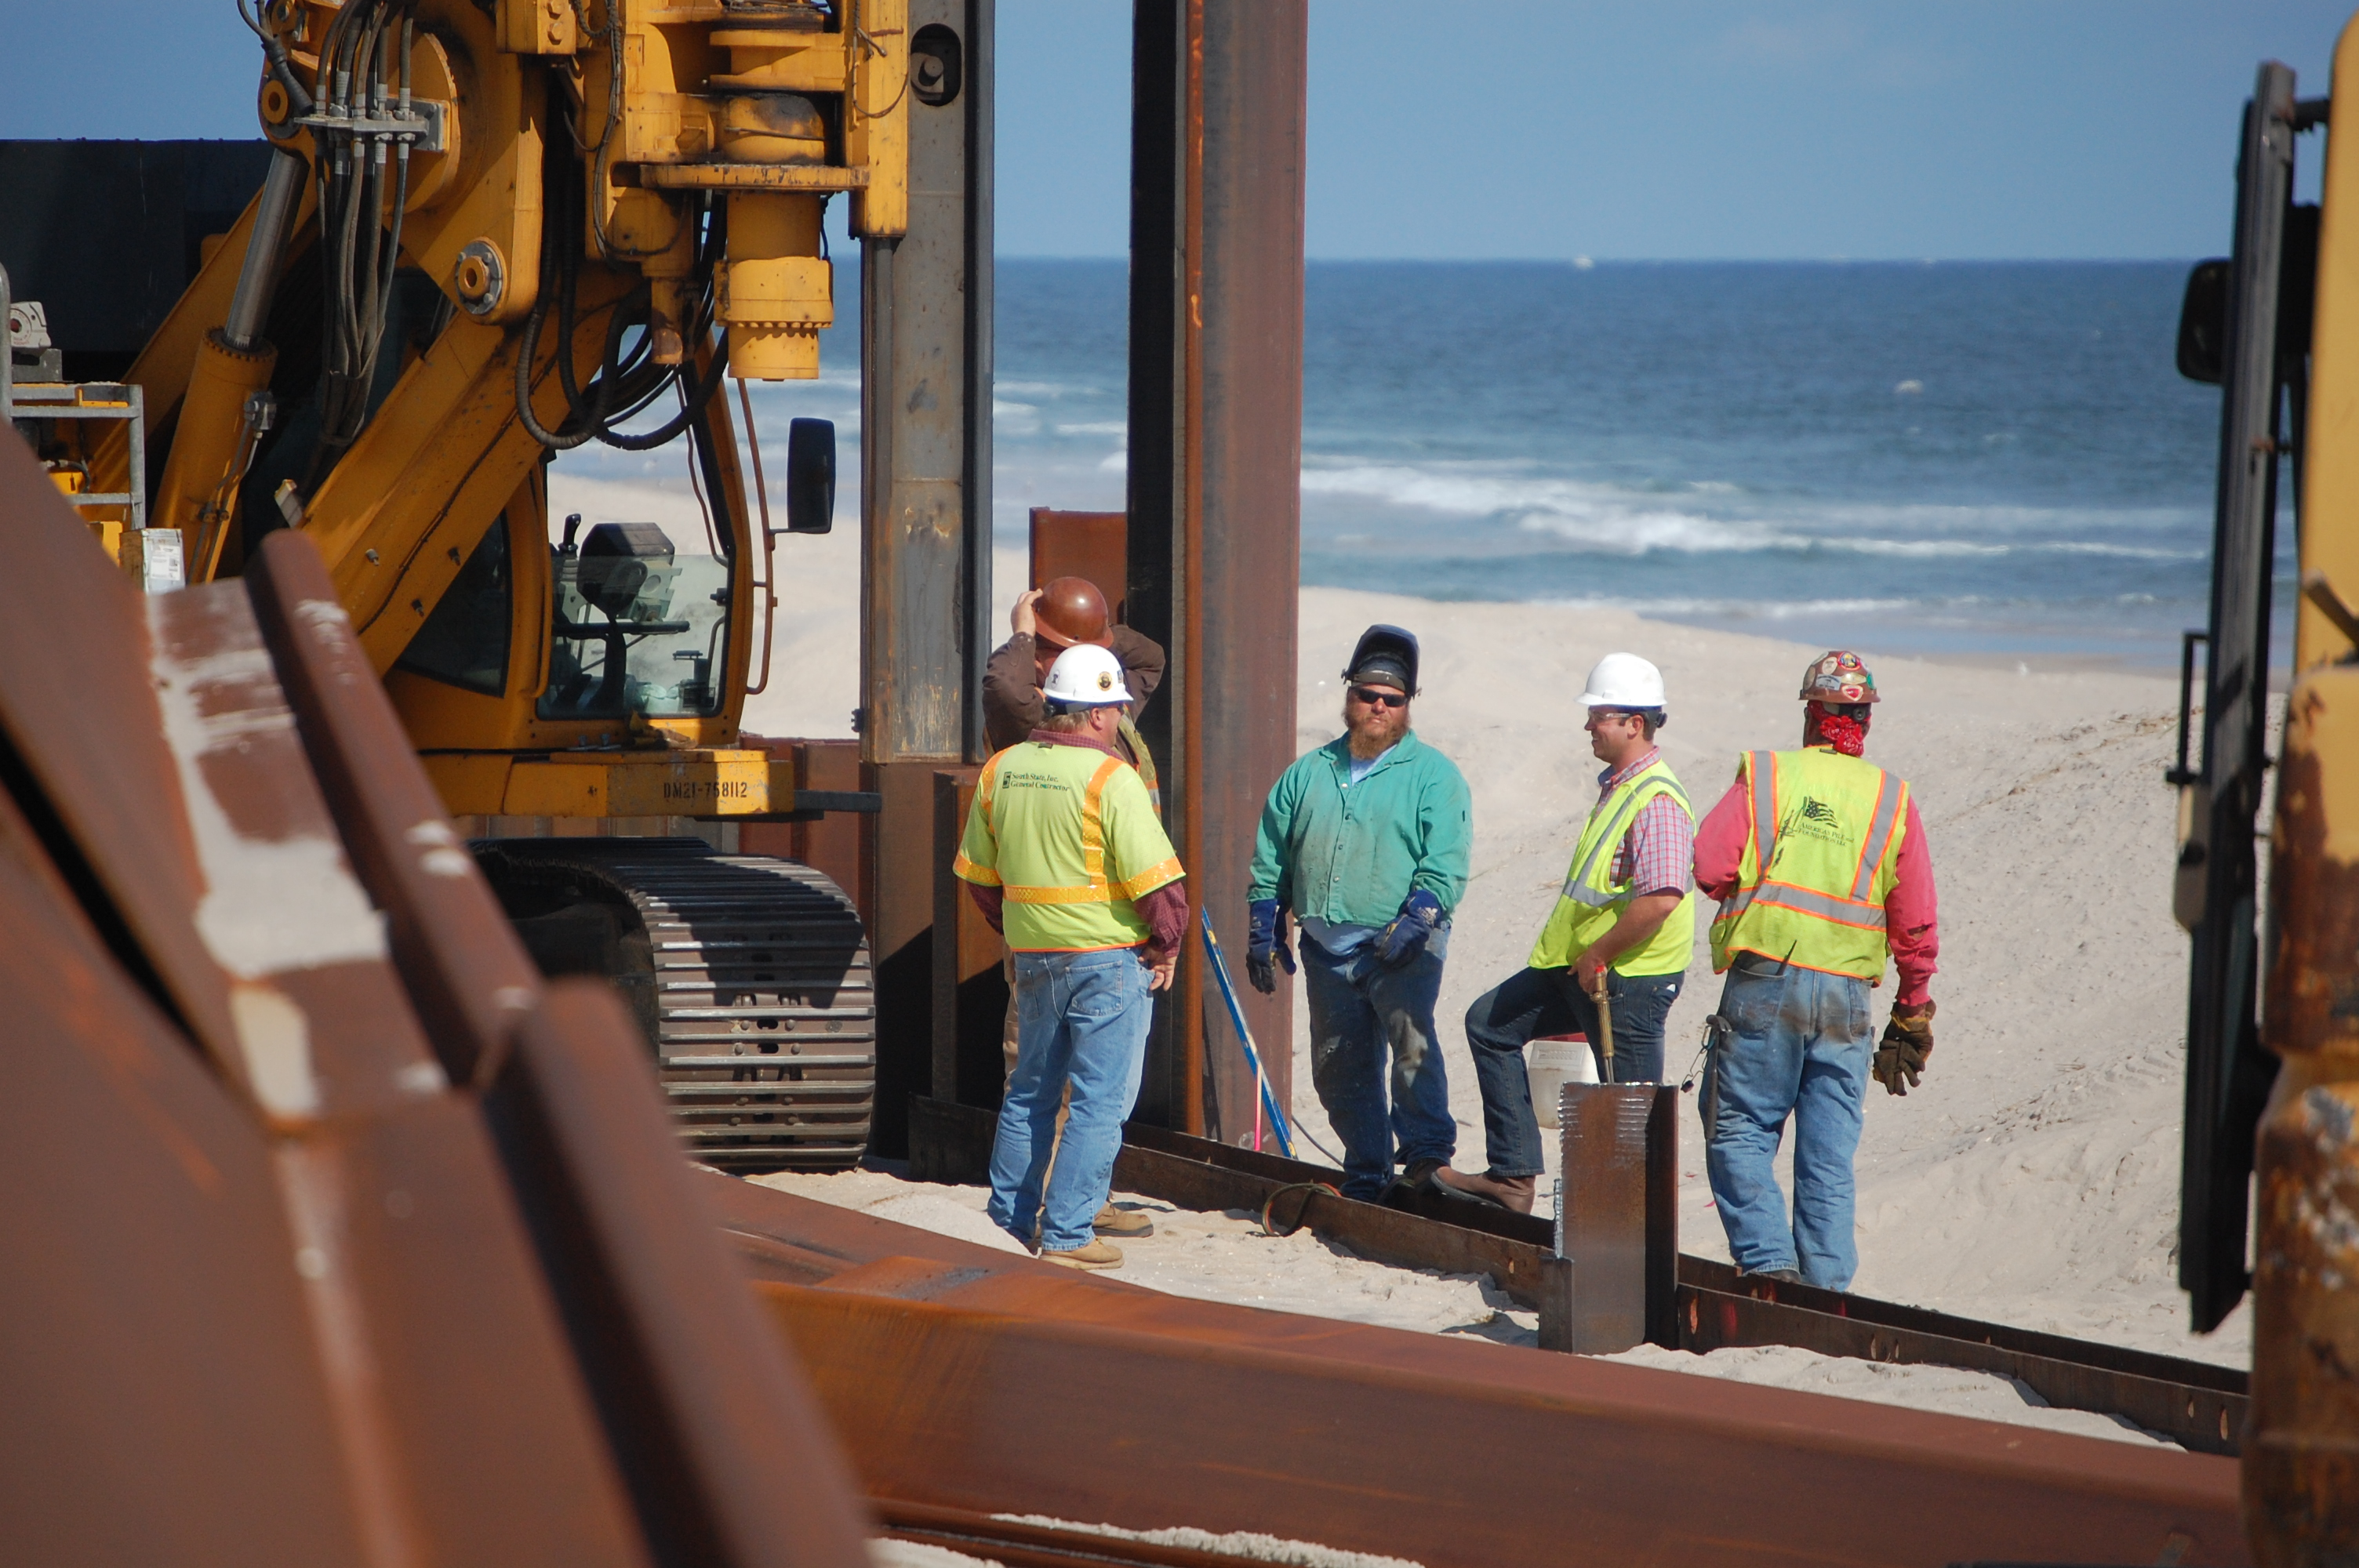 A steel sea wall revetment is built along the oceanfront in Brick, N.J. (Photo: Daniel Nee)